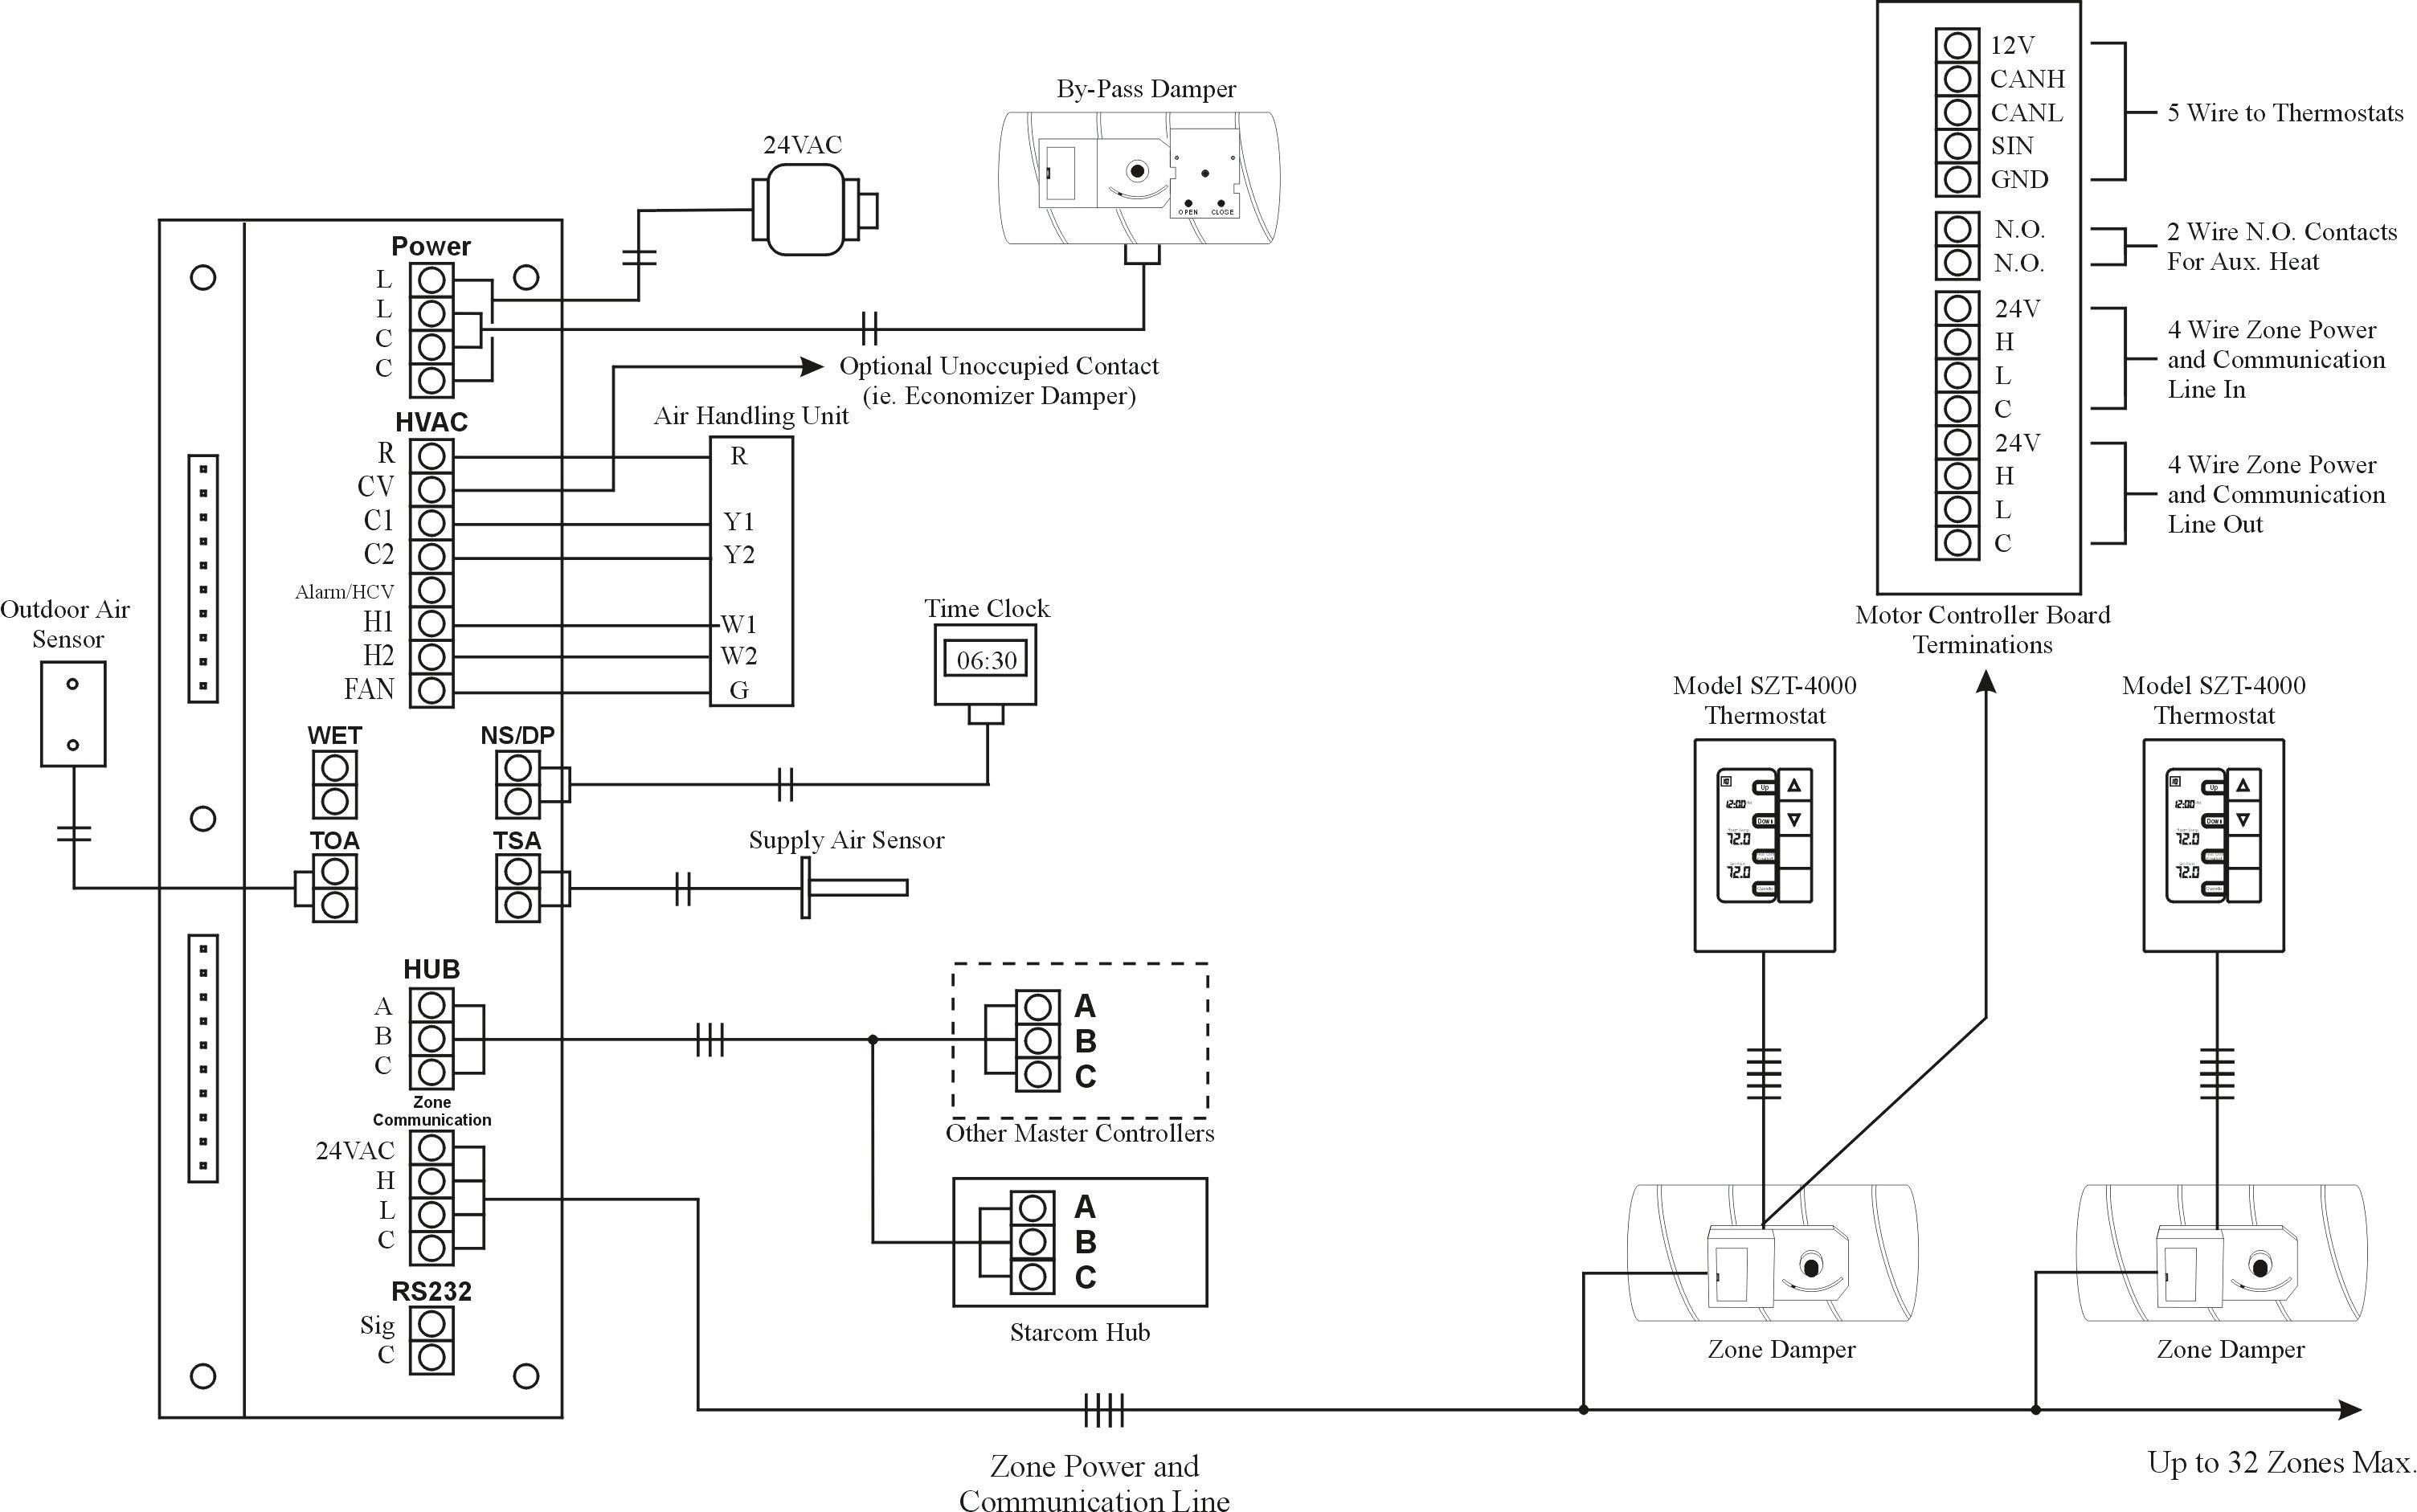 Unique Wiring Diagram For Goodman Gas Furnace Diagram Diagramsample Diagramtemplate Wiringdiagram Diagramchart Home Security Systems Alarm System Diagram